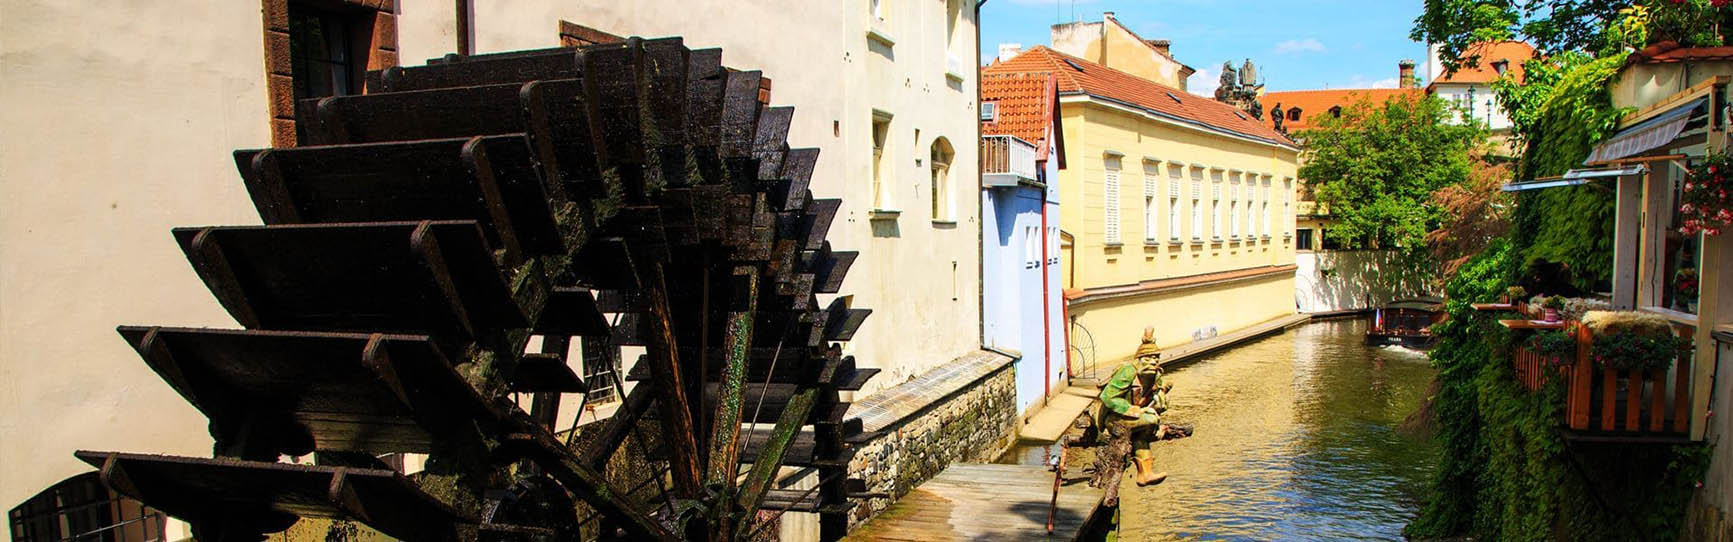 """Excursion to the """"Venice of Prague"""" by boat (Devil`s Channel)"""